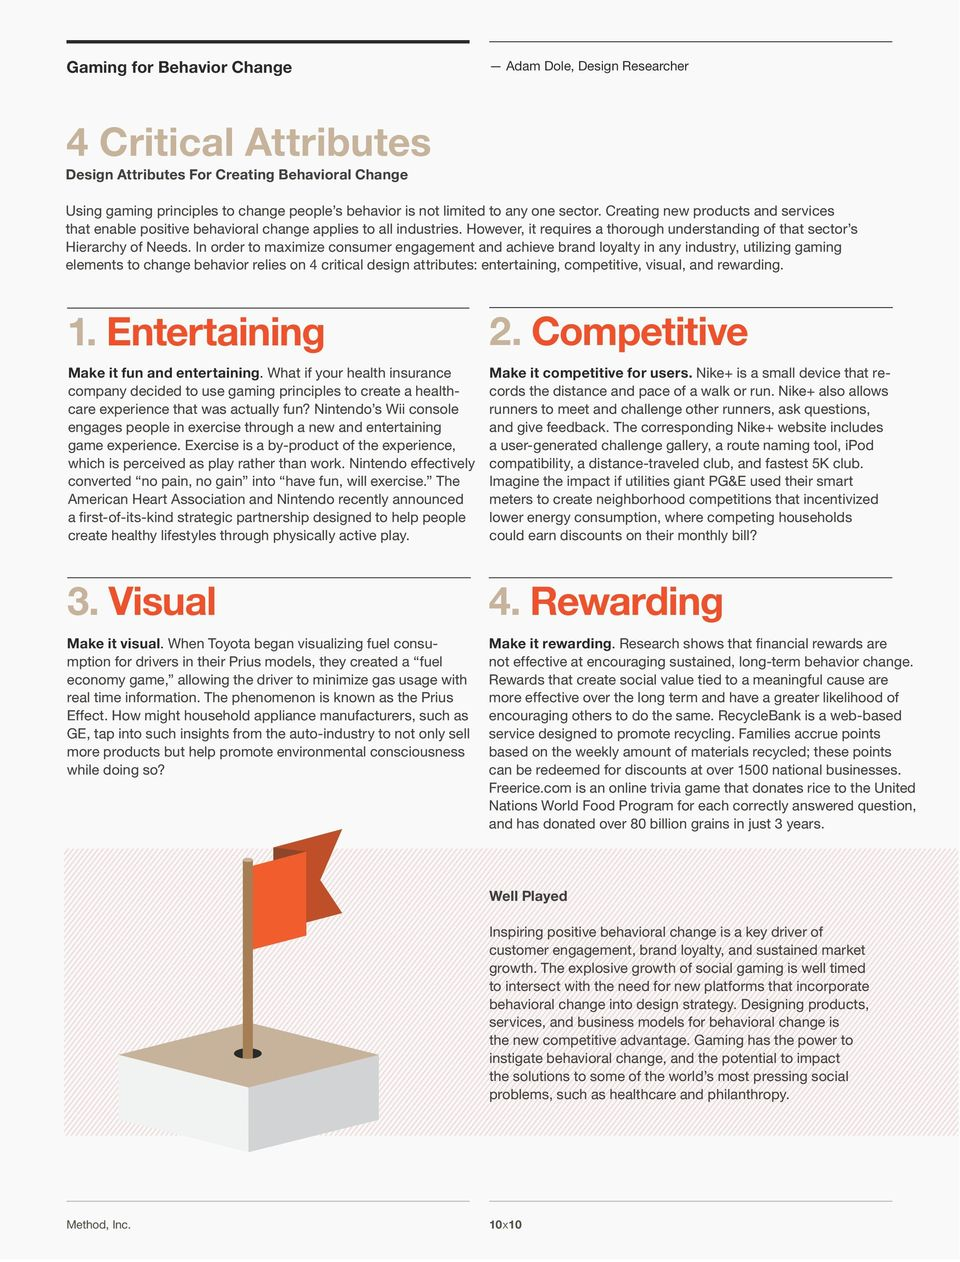 In order to maximize consumer engagement and achieve brand loyalty in any industry, utilizing gaming elements to change behavior relies on 4 critical design attributes: entertaining, competitive,